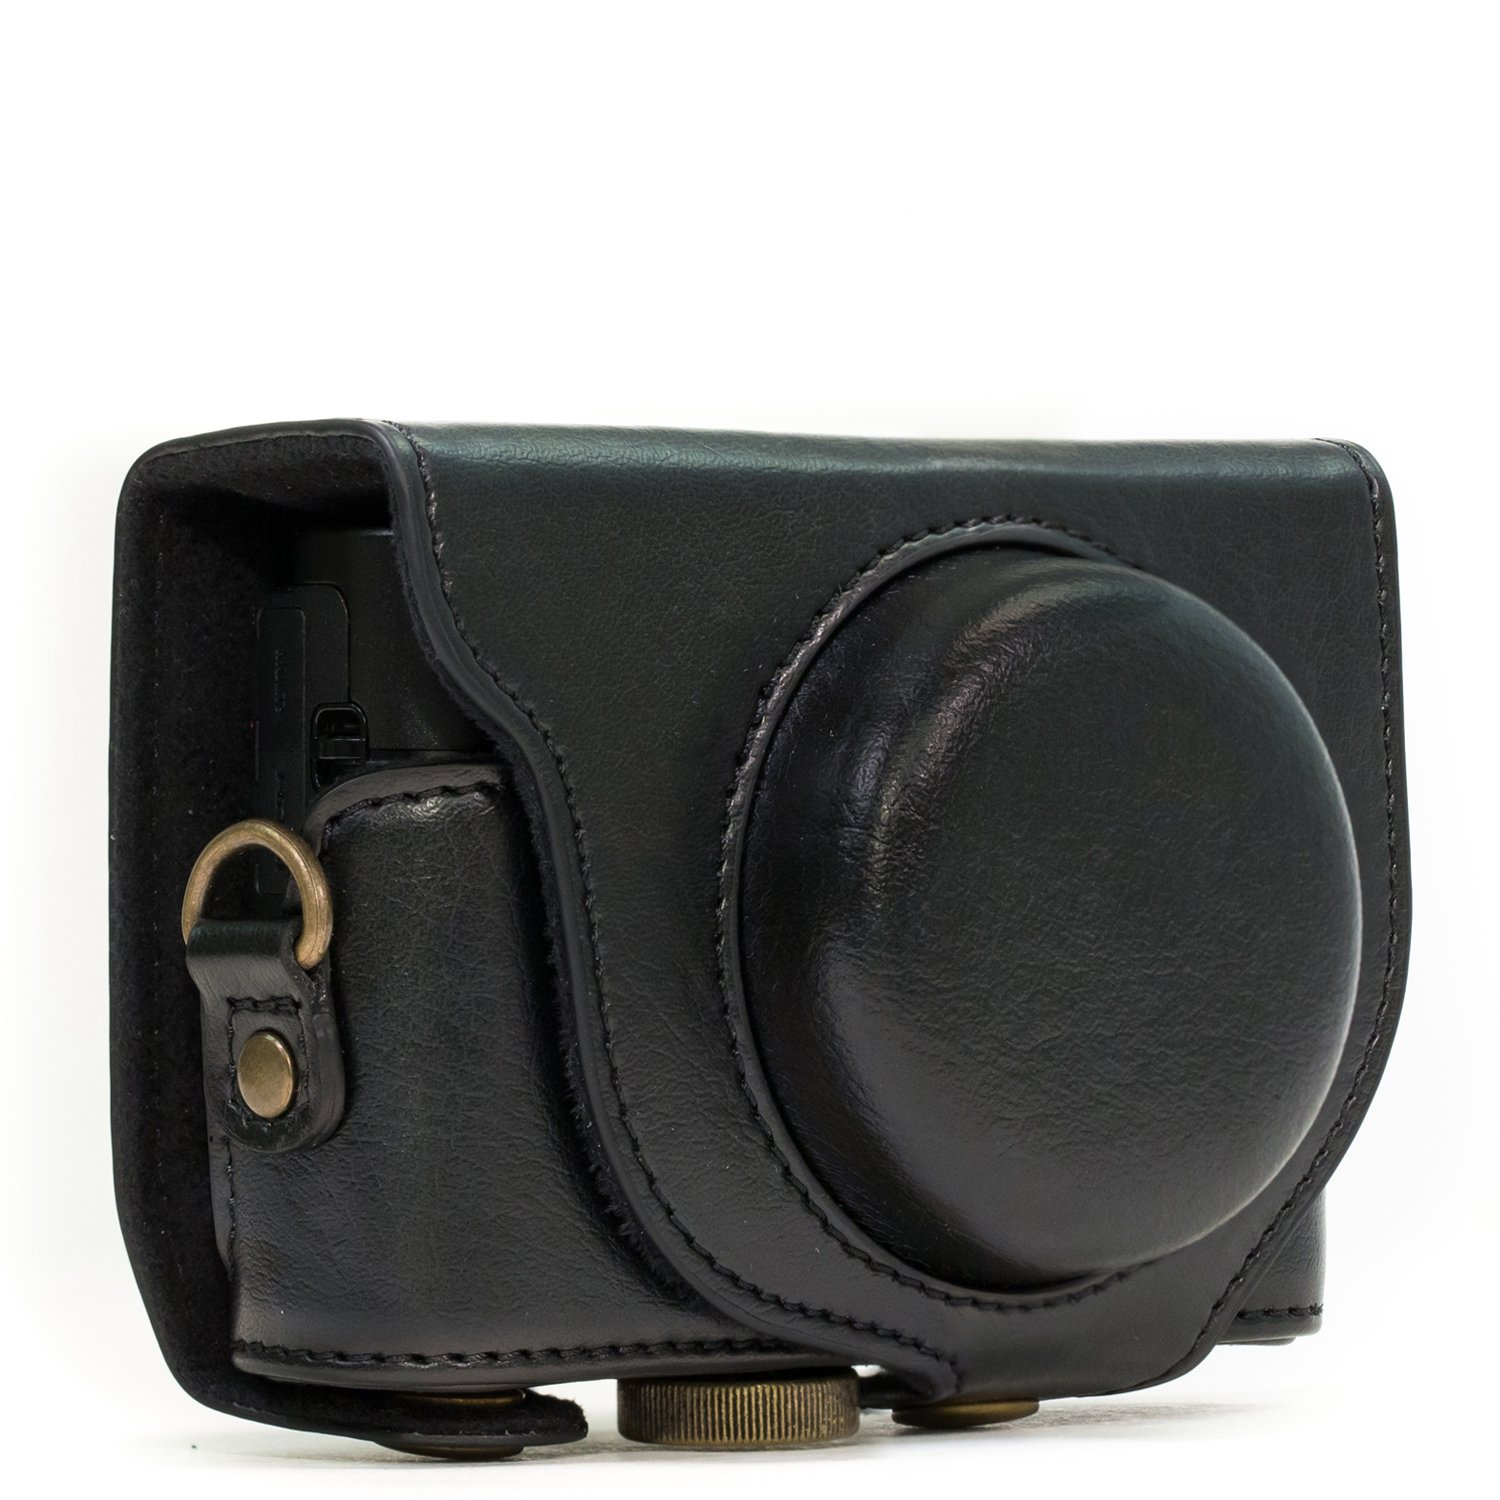 MegaGear Sony Cyber-shot DSC-RX100 III, DSC-RX100 IV, DSC-RX100 V Ever Ready Leather Camera Case with Strap